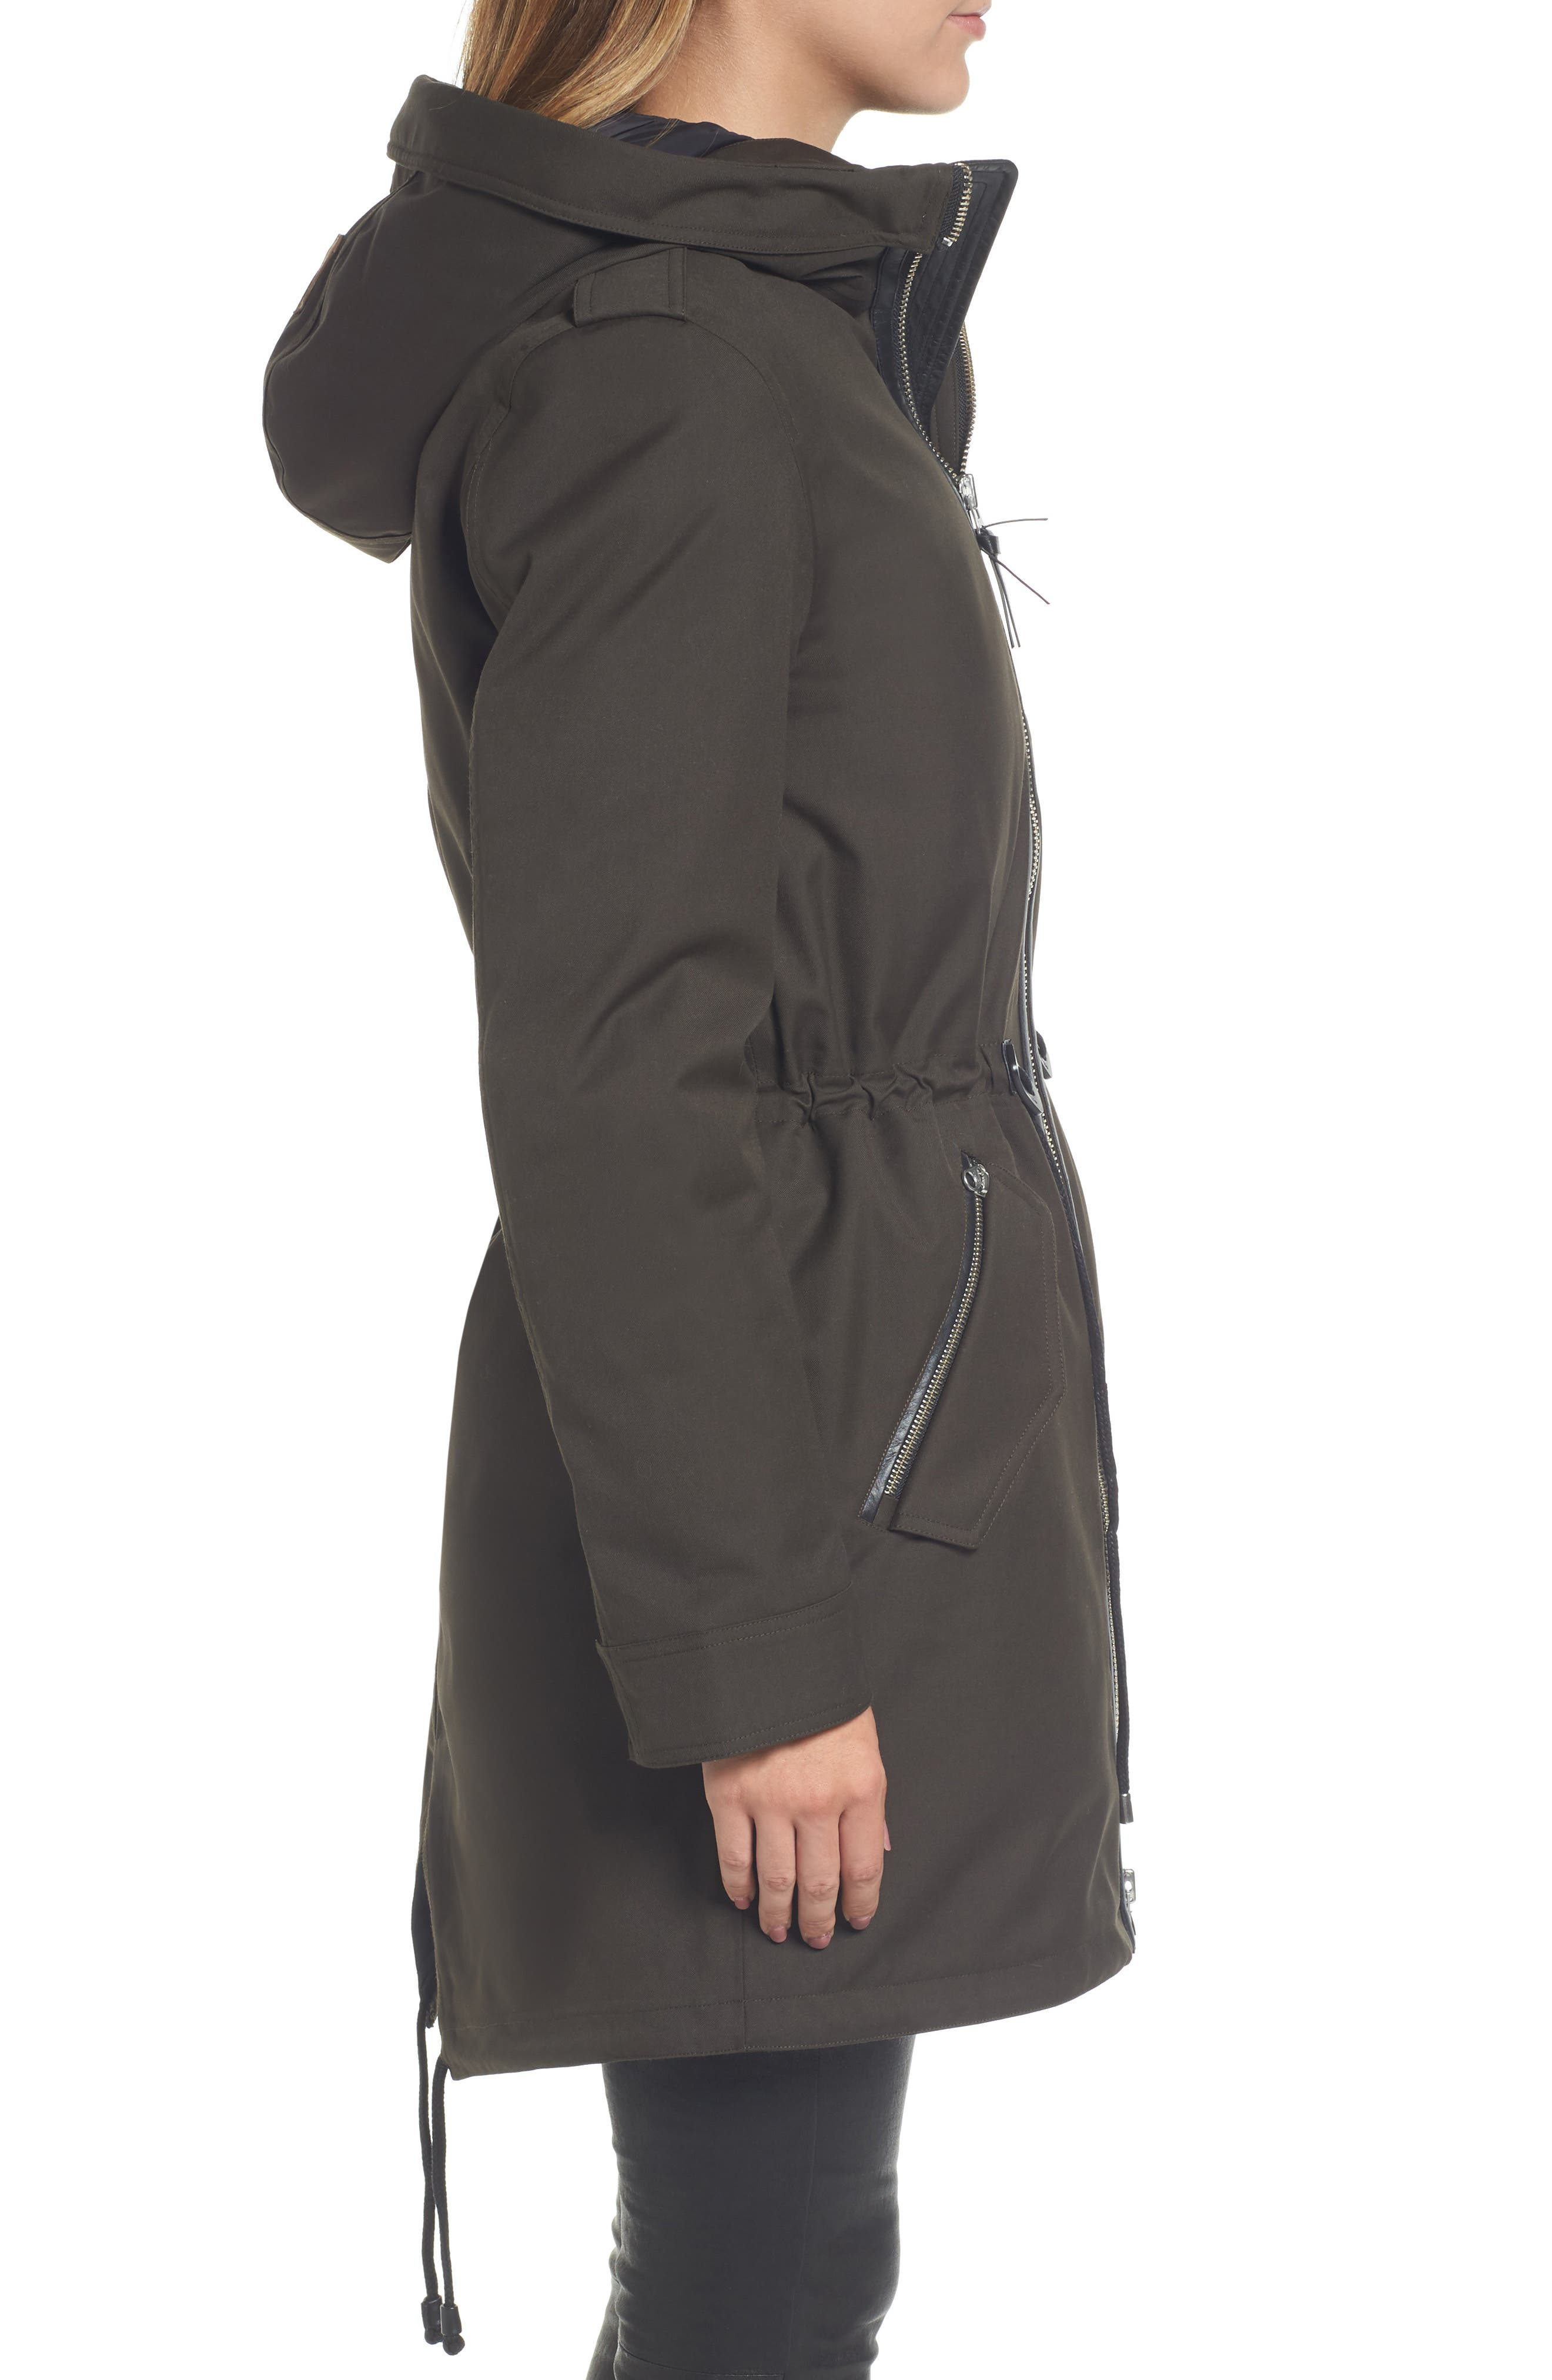 Rada-SP Hooded Raincoat with Removable Down Liner,                             Alternate thumbnail 3, color,                             355